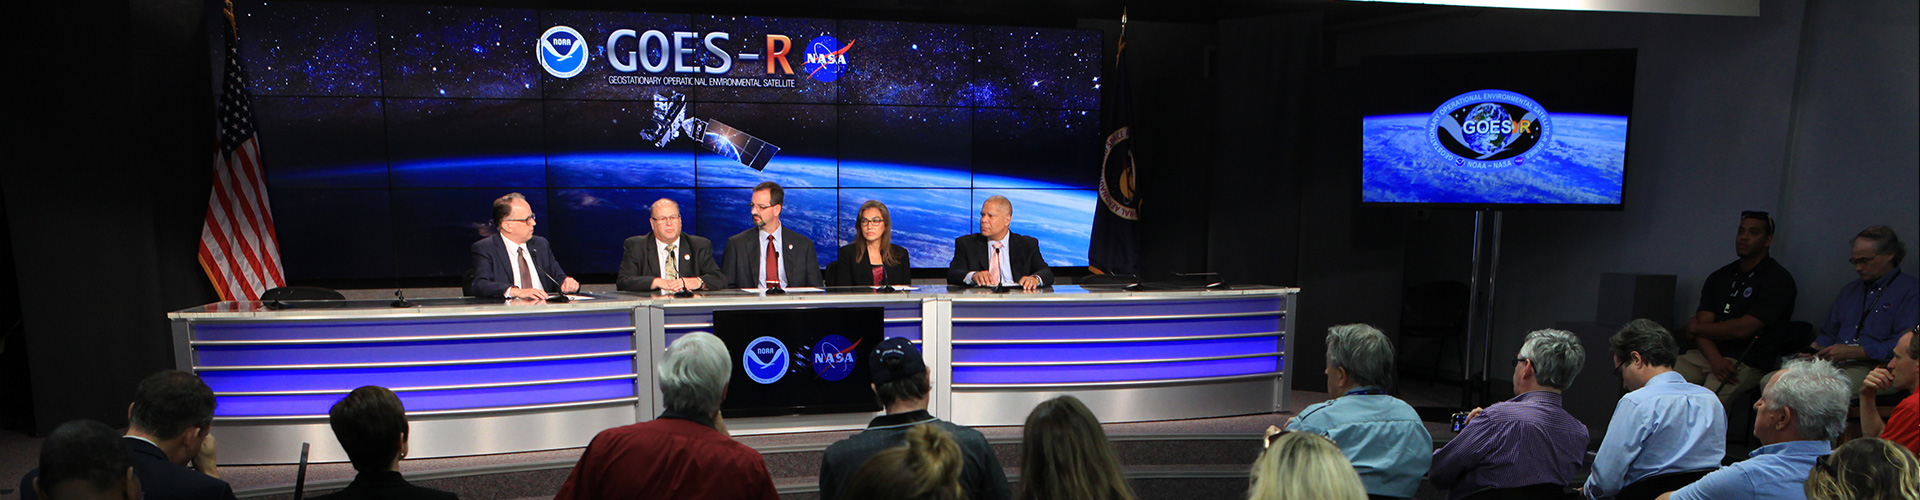 Picture of GOES-R Press Briefing